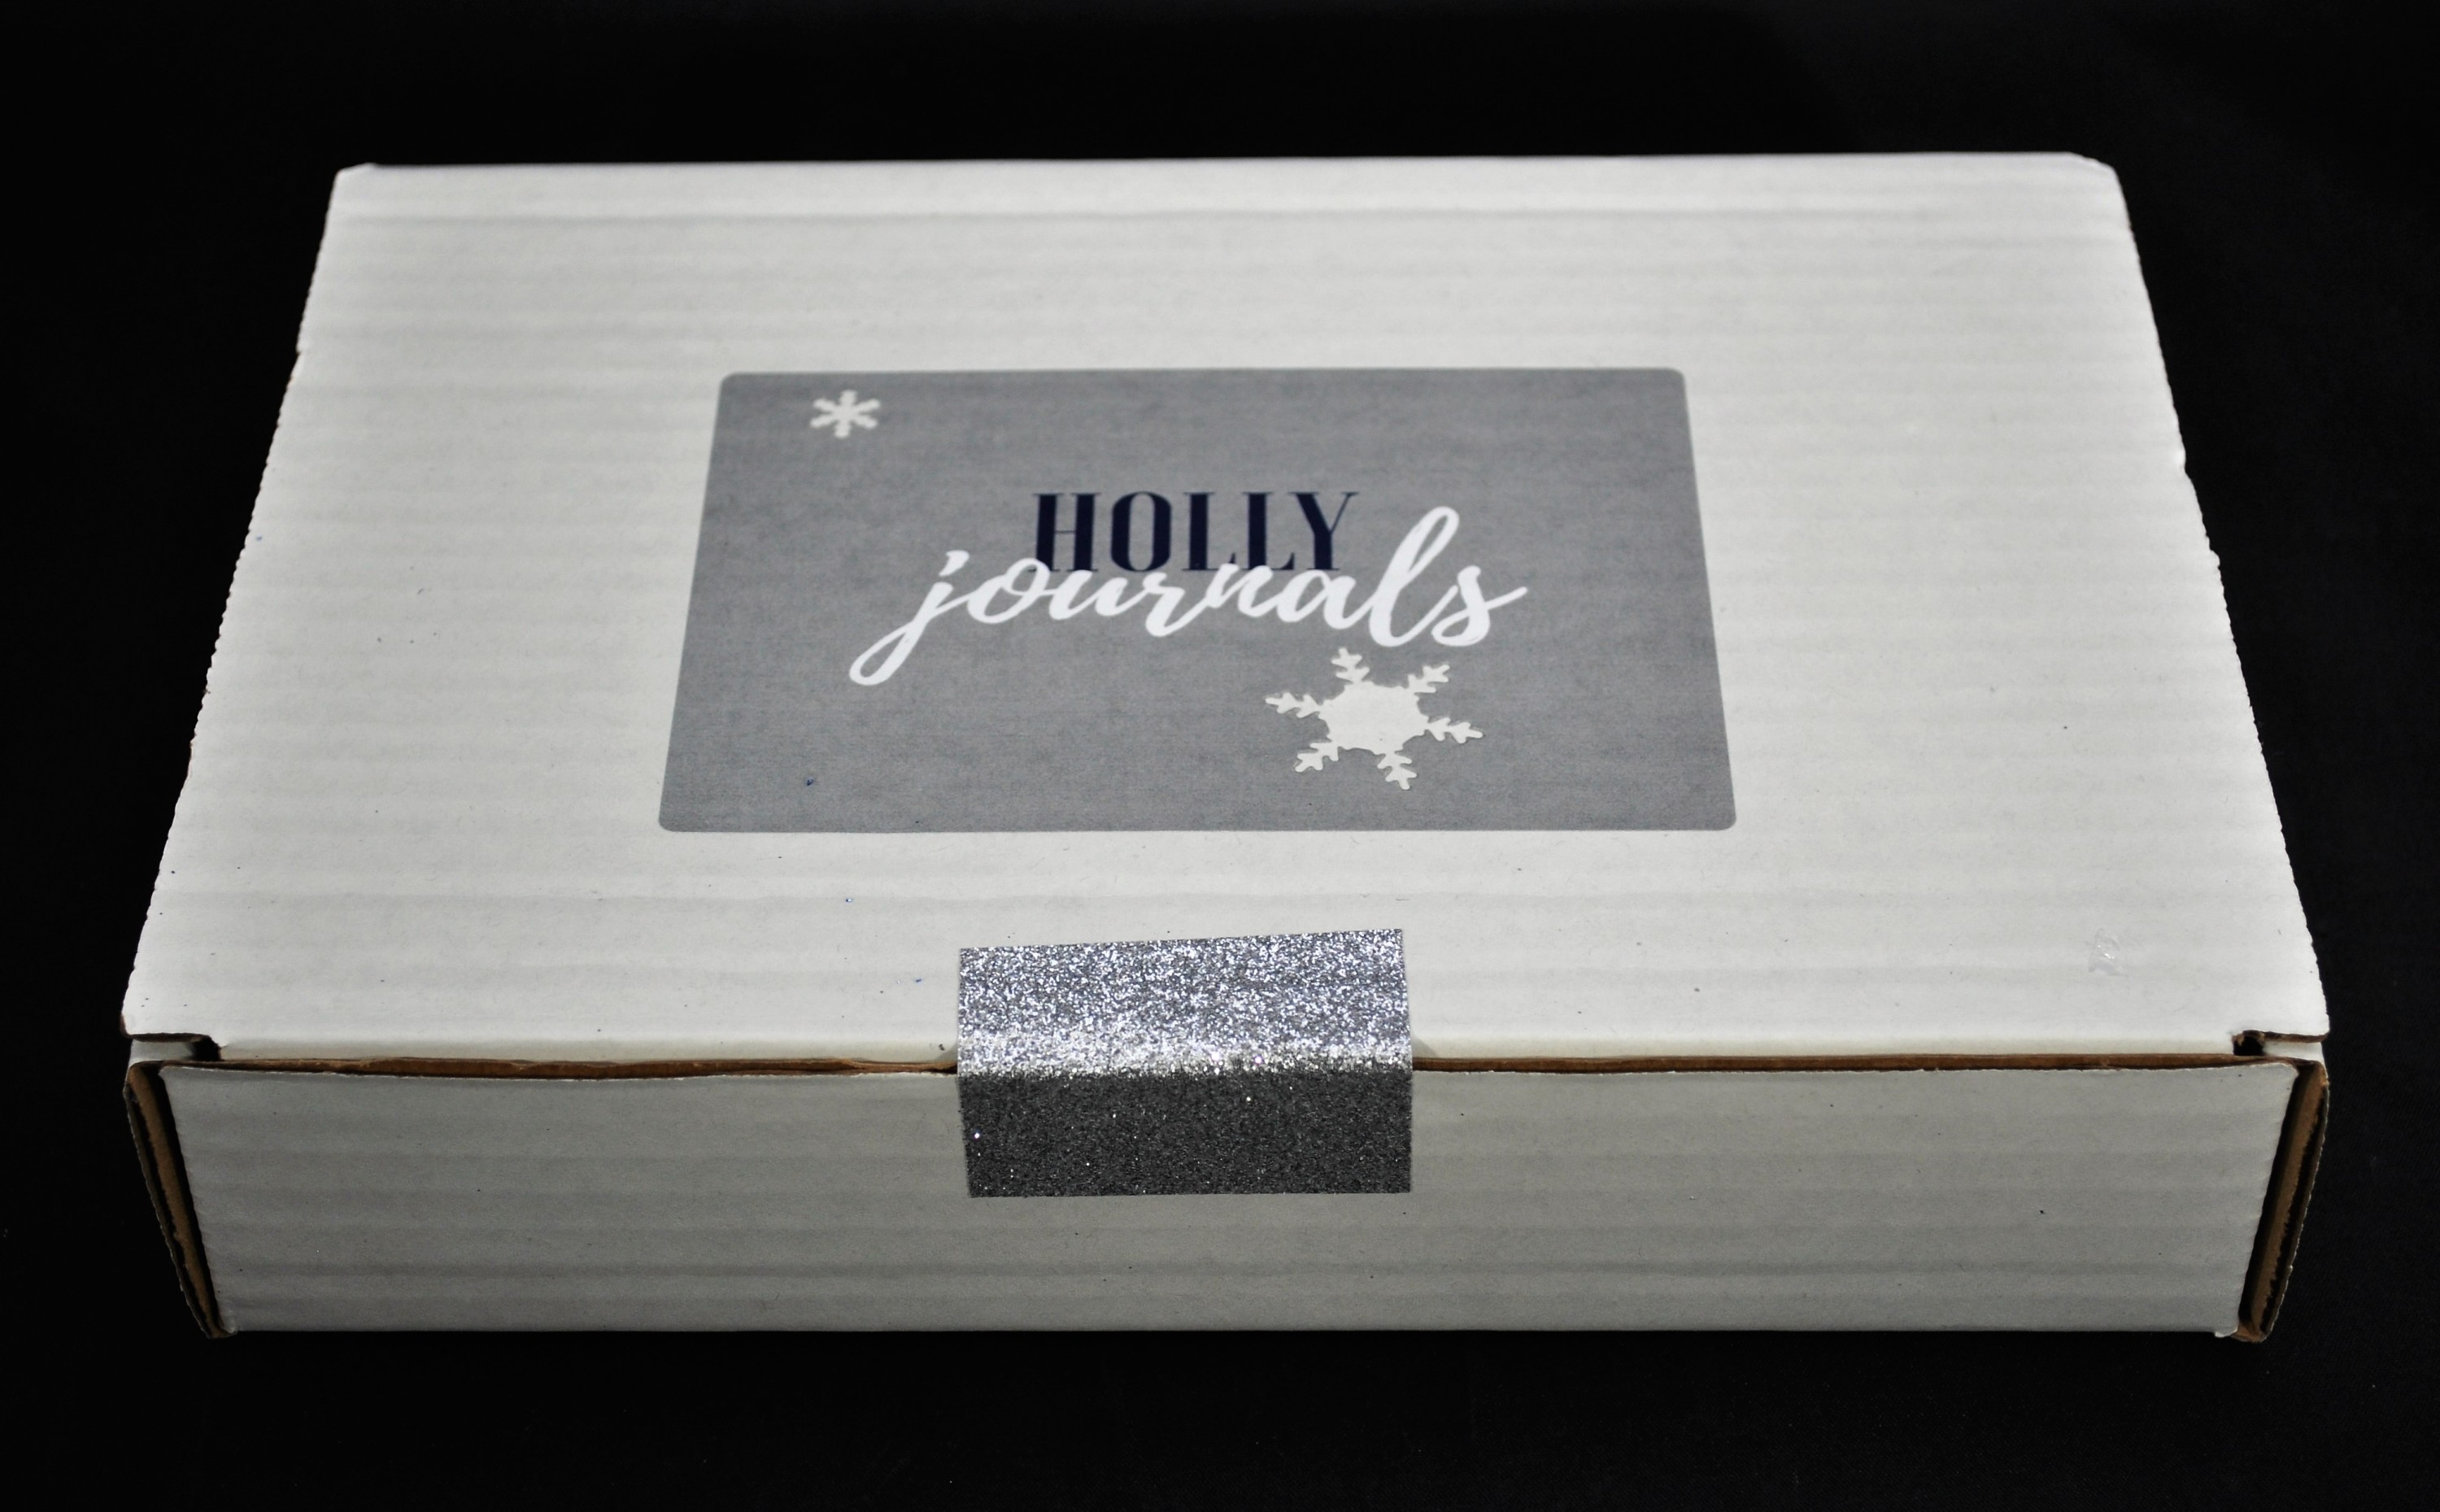 holly-journals-december-2016-box